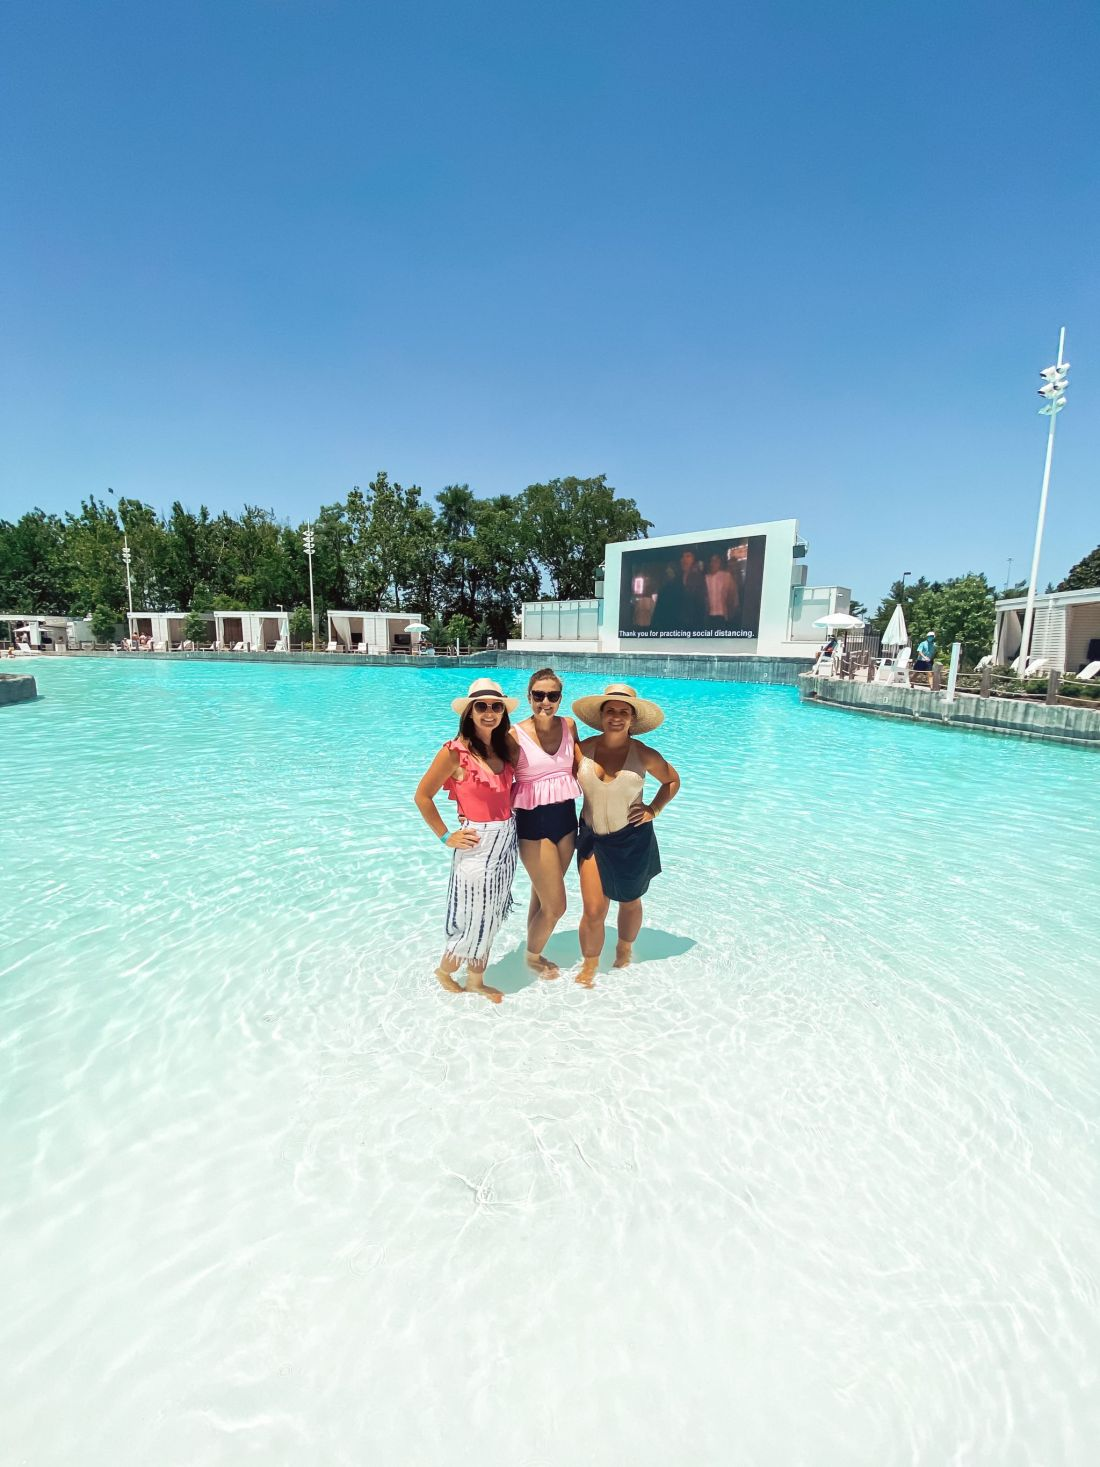 Soundwaves Water Park by popular Nashville blog, Modern Day Moguls: image of three women standing together in the shallow end of a pool.